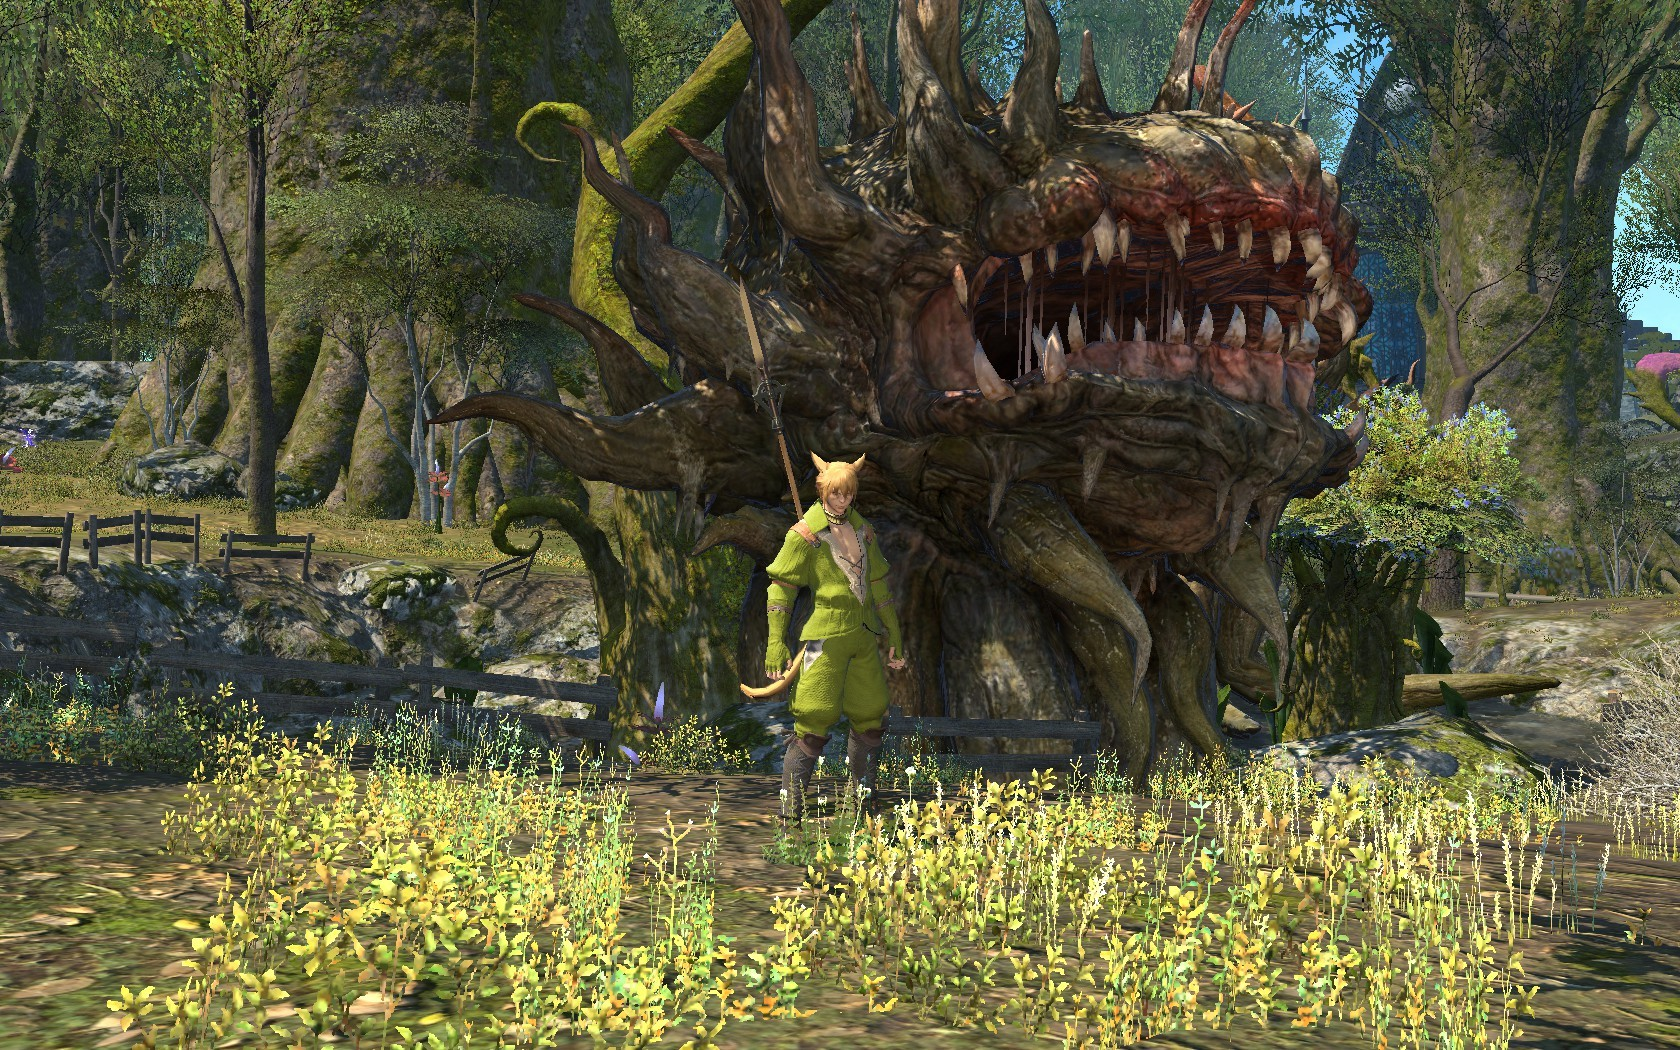 Final Fantasy XIV: A Realm Reborn - As level rises monsters seem to grow larger